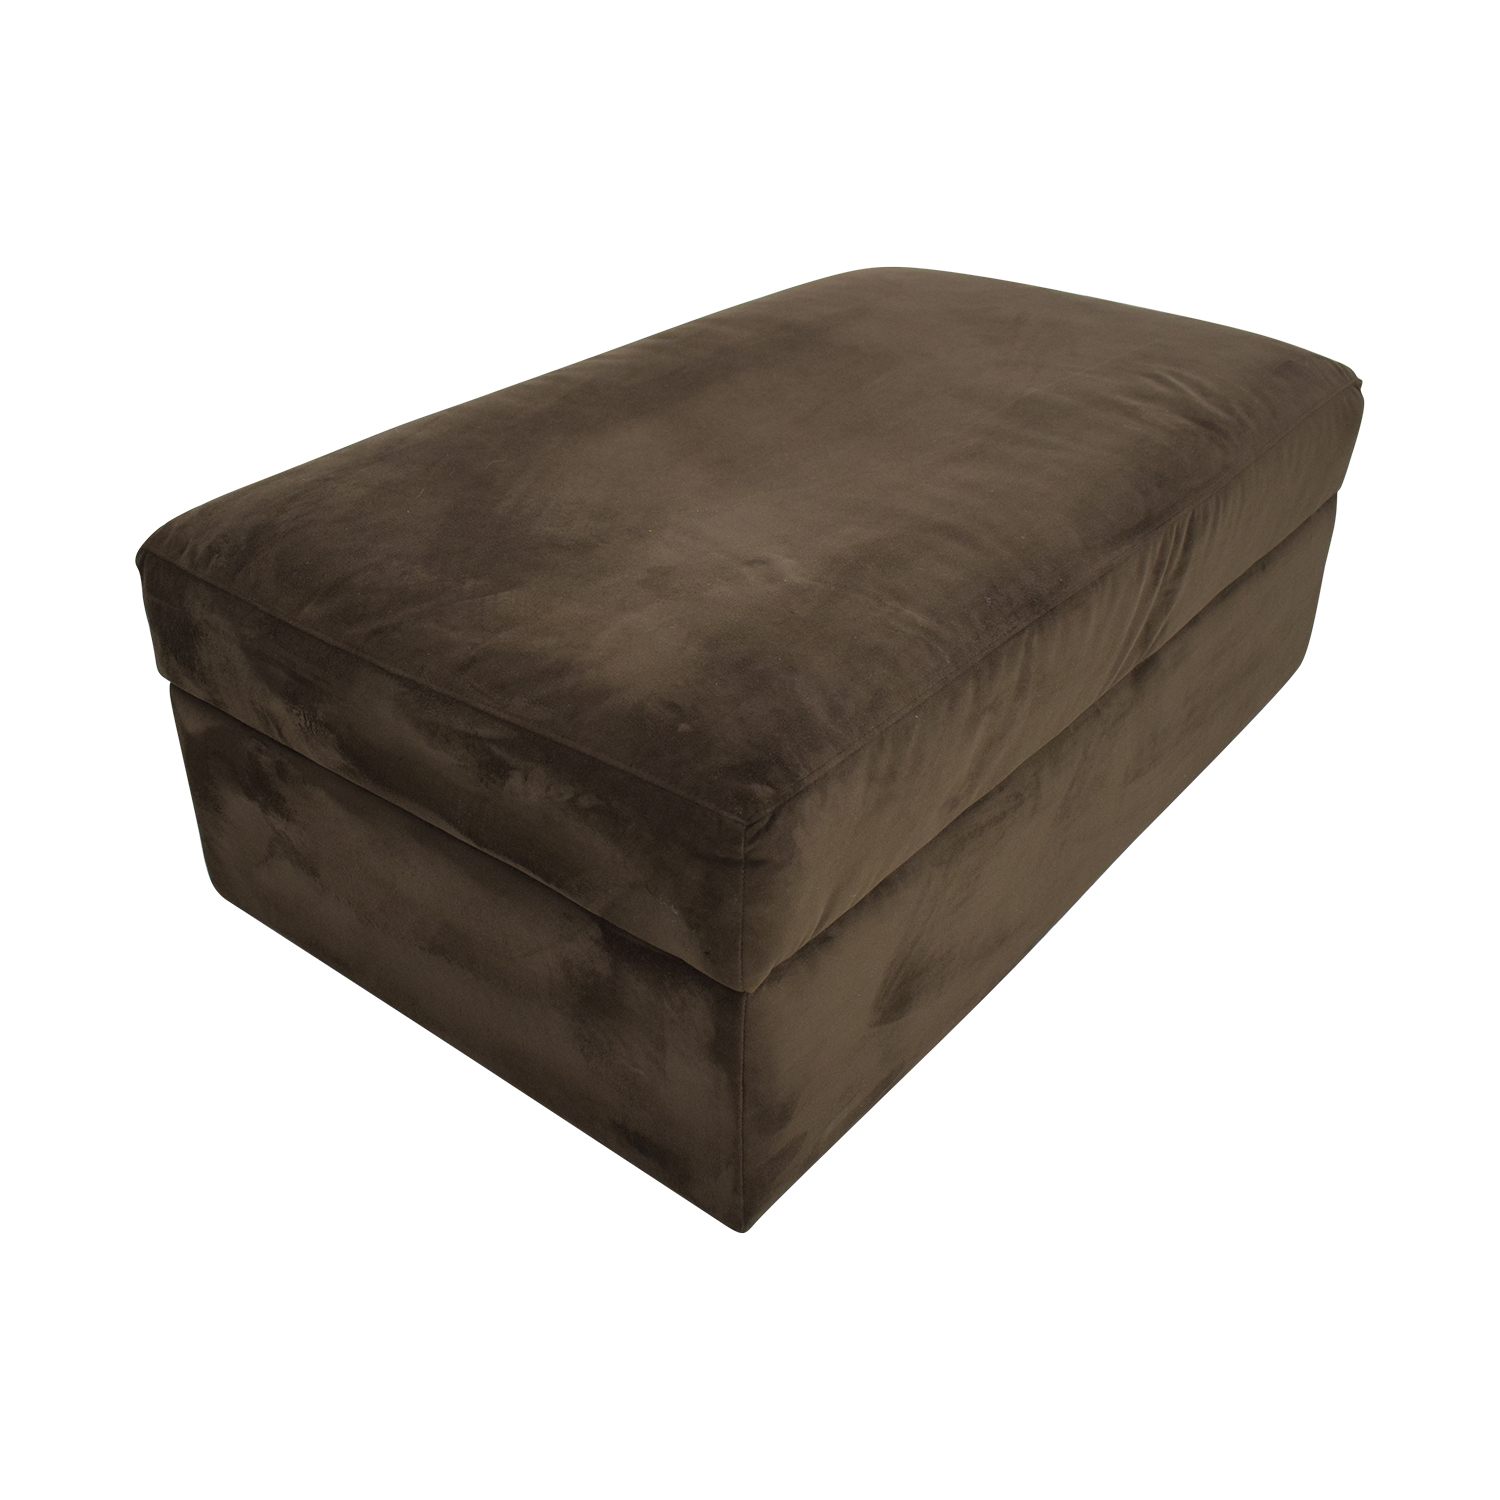 Crate & Barrel Crate & Barrel Storage Ottoman Ottomans